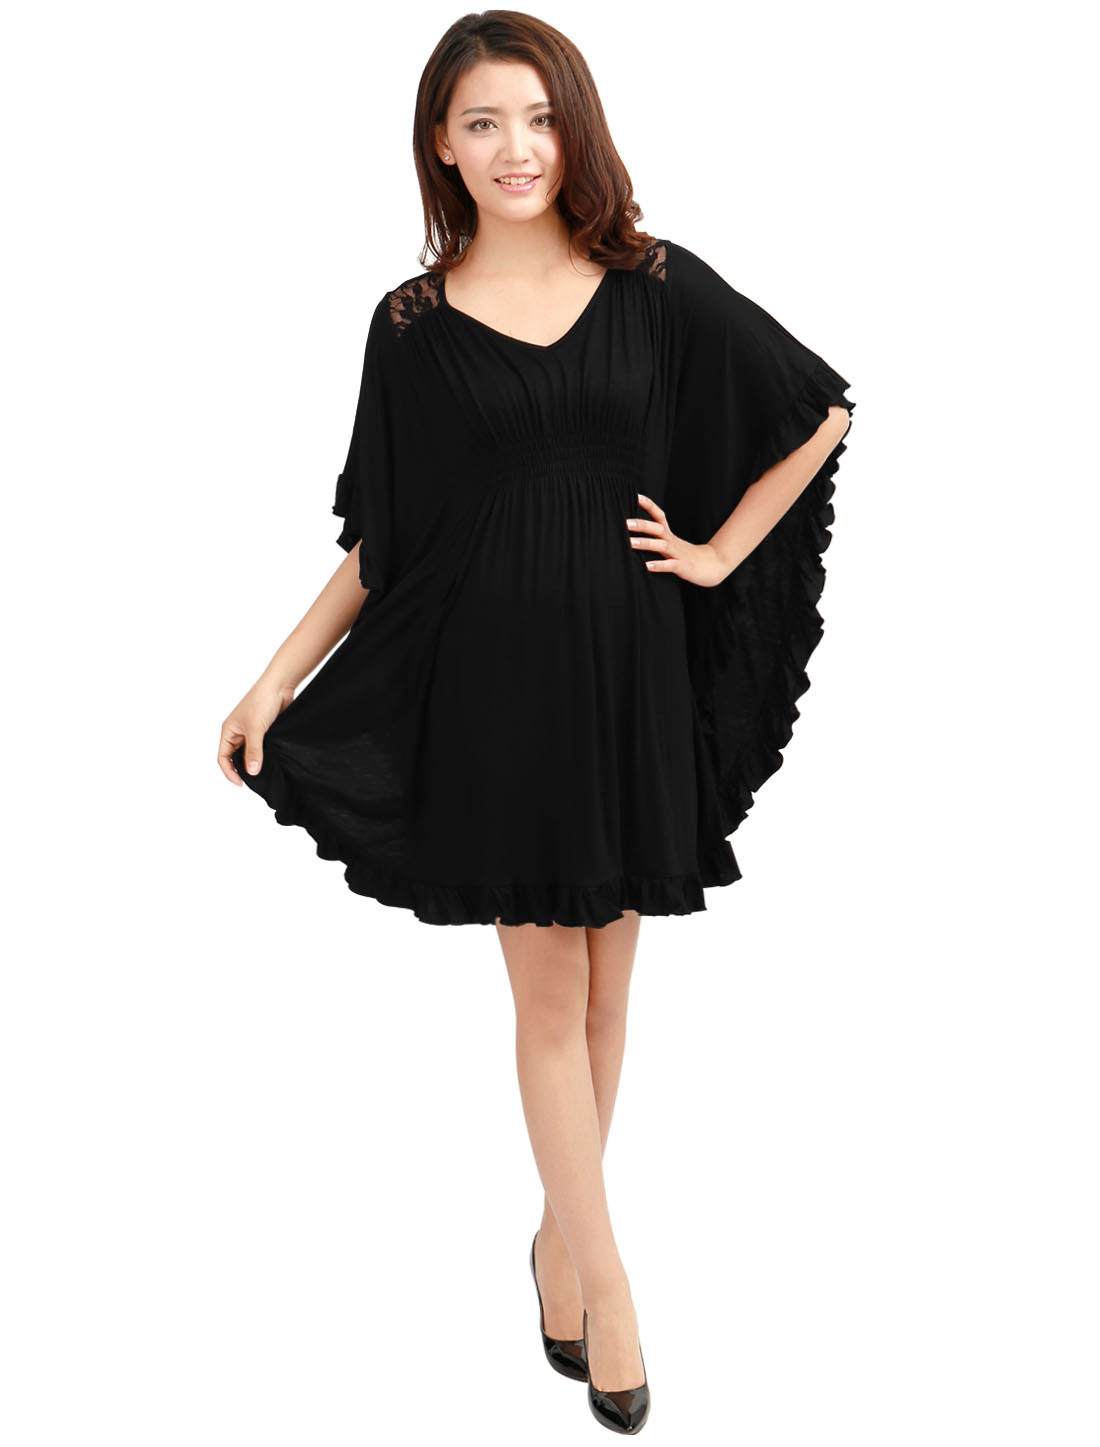 Women NEW Lace SWplice Back Ruffled Hem Black Casual Mini dress S